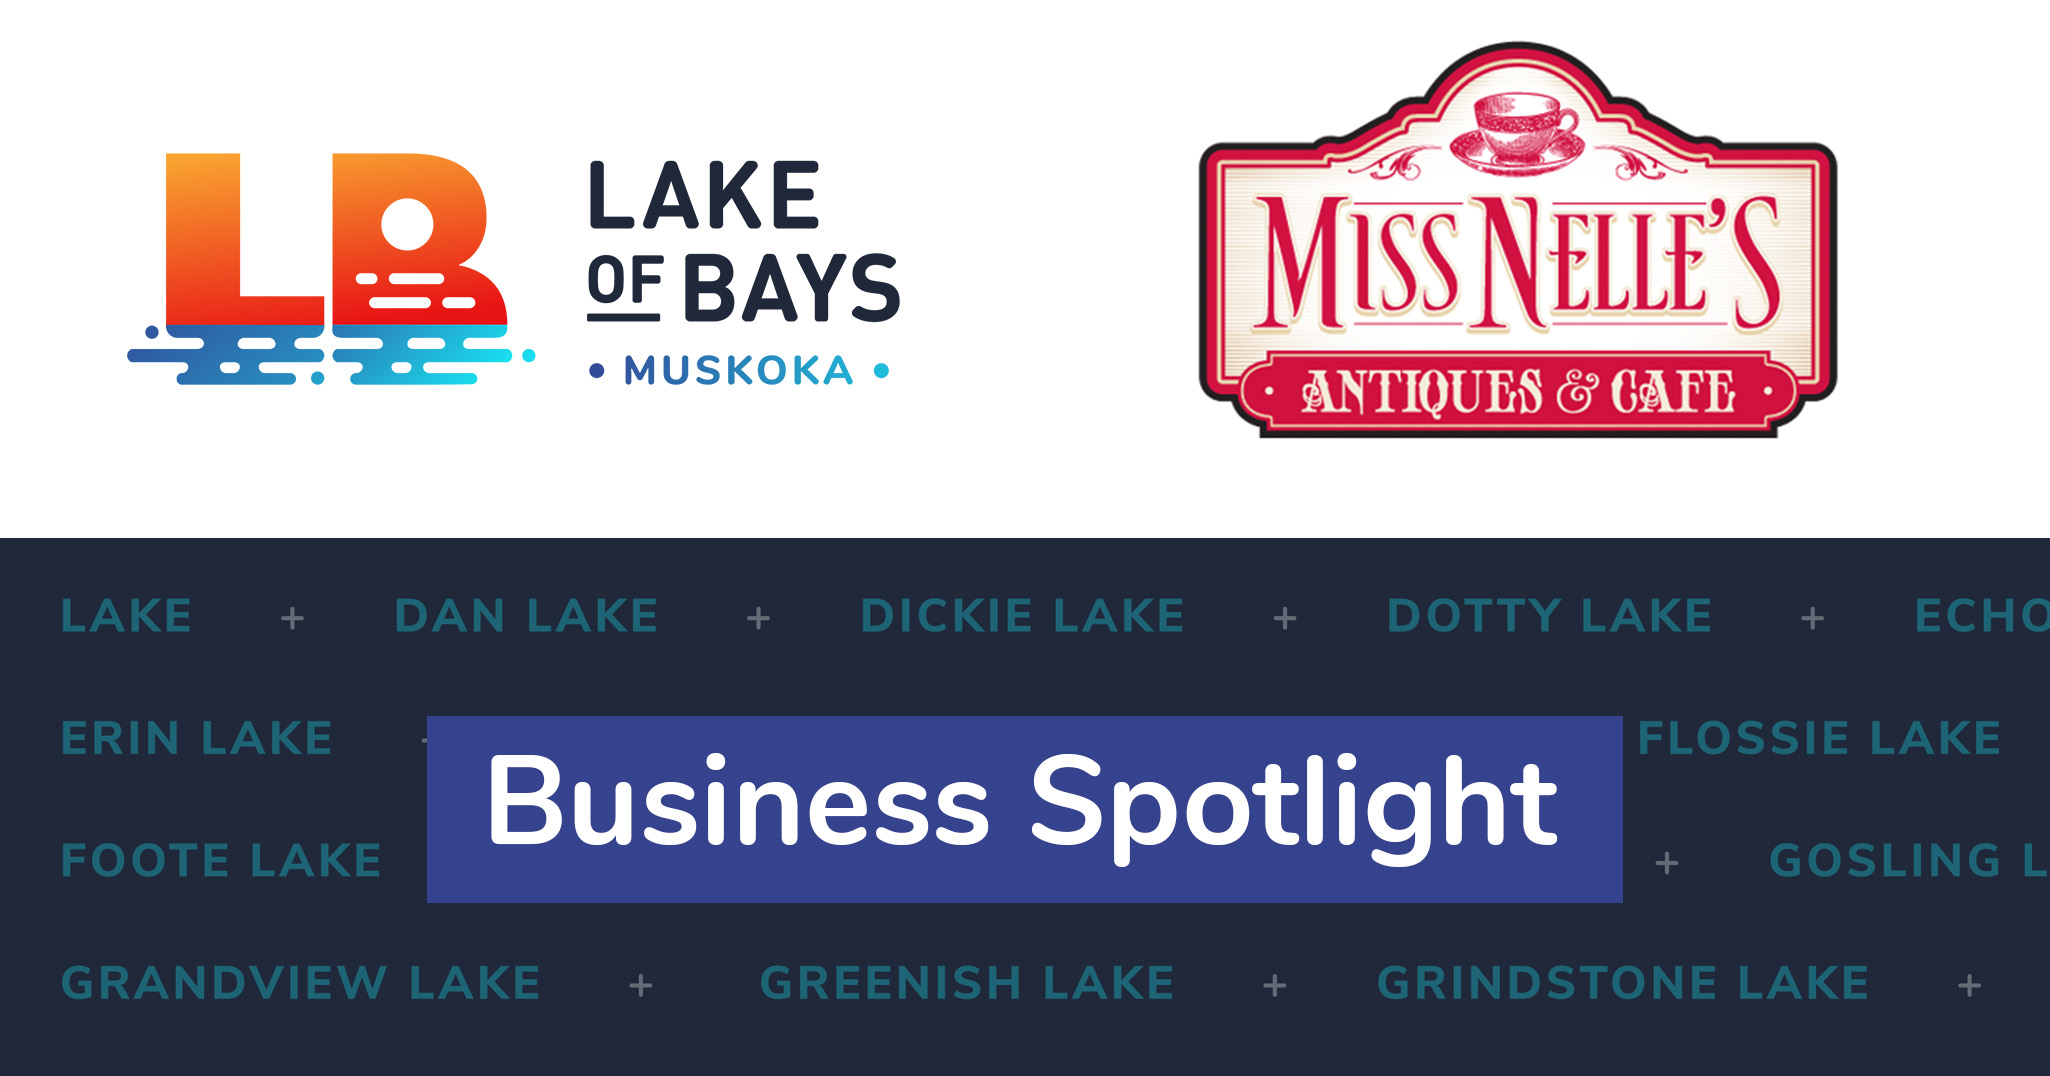 Business Spotlight - Miss Nelles